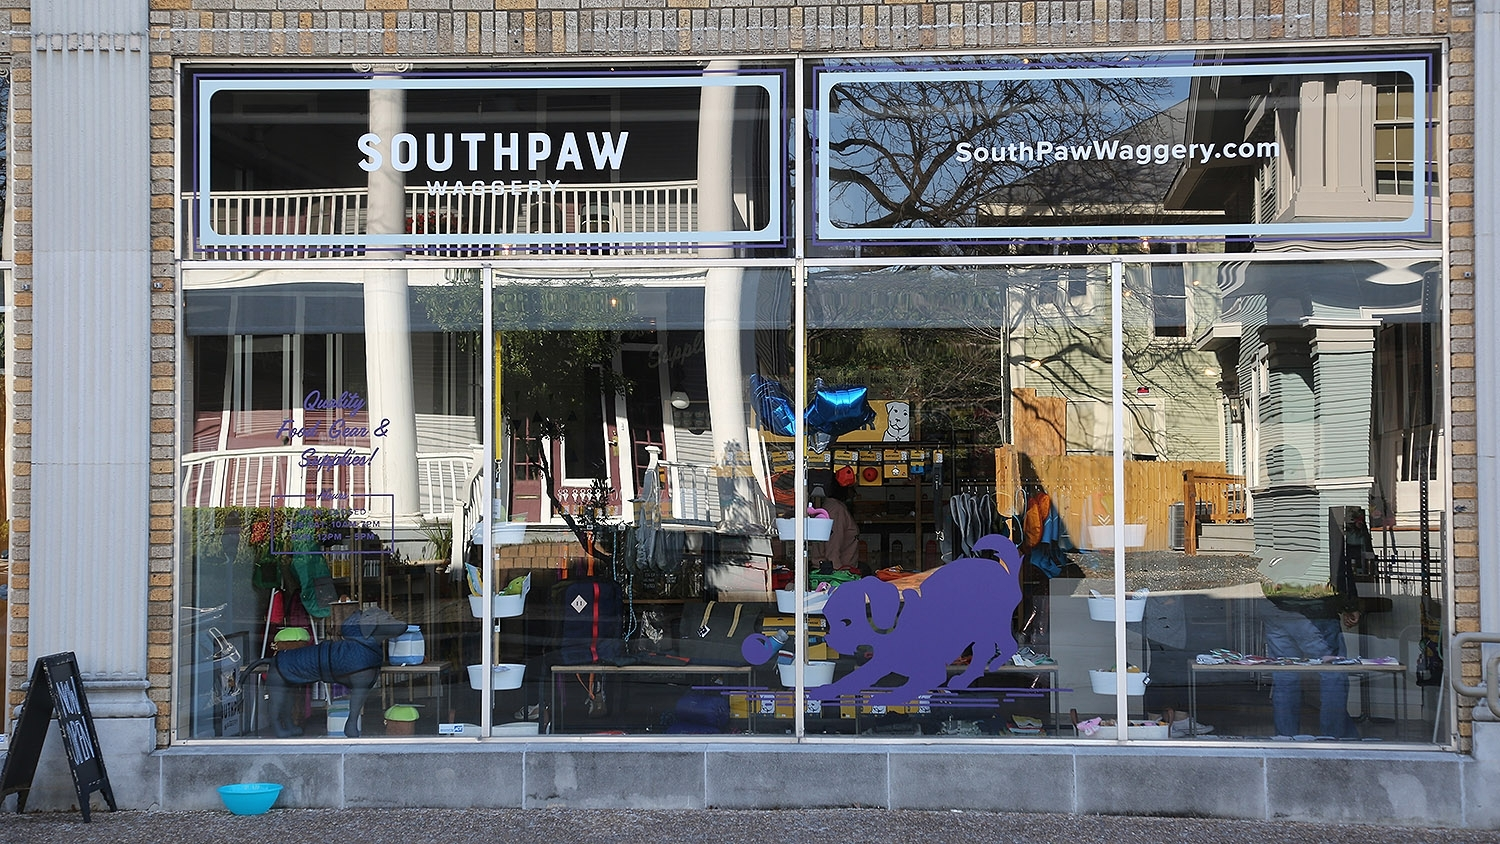 SouthPaw Waggery offers rare retail experience downtown